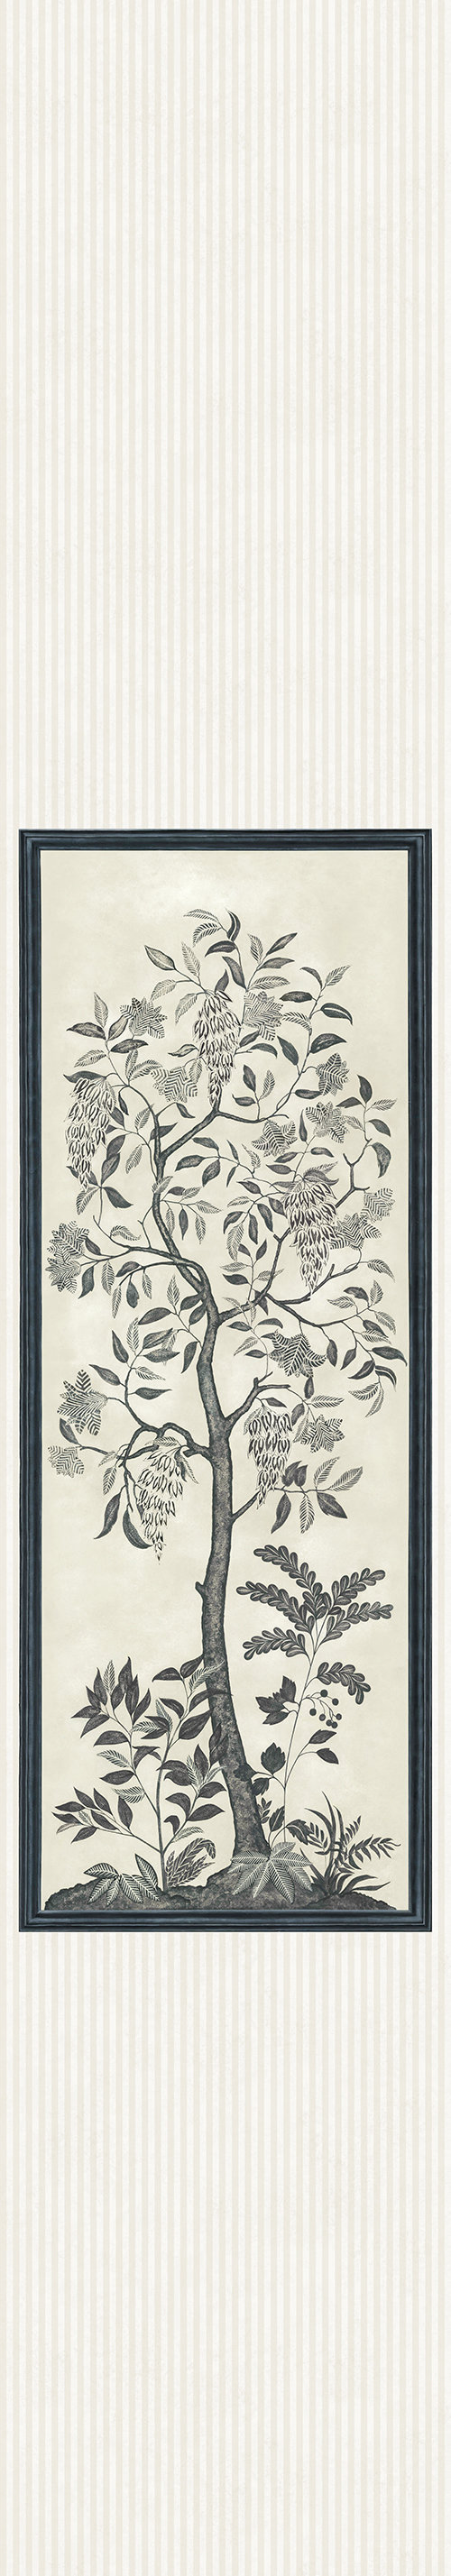 Cole & Son Trees of Eden Panel Charcoal / Parchment Mural - Product code: 113/14041